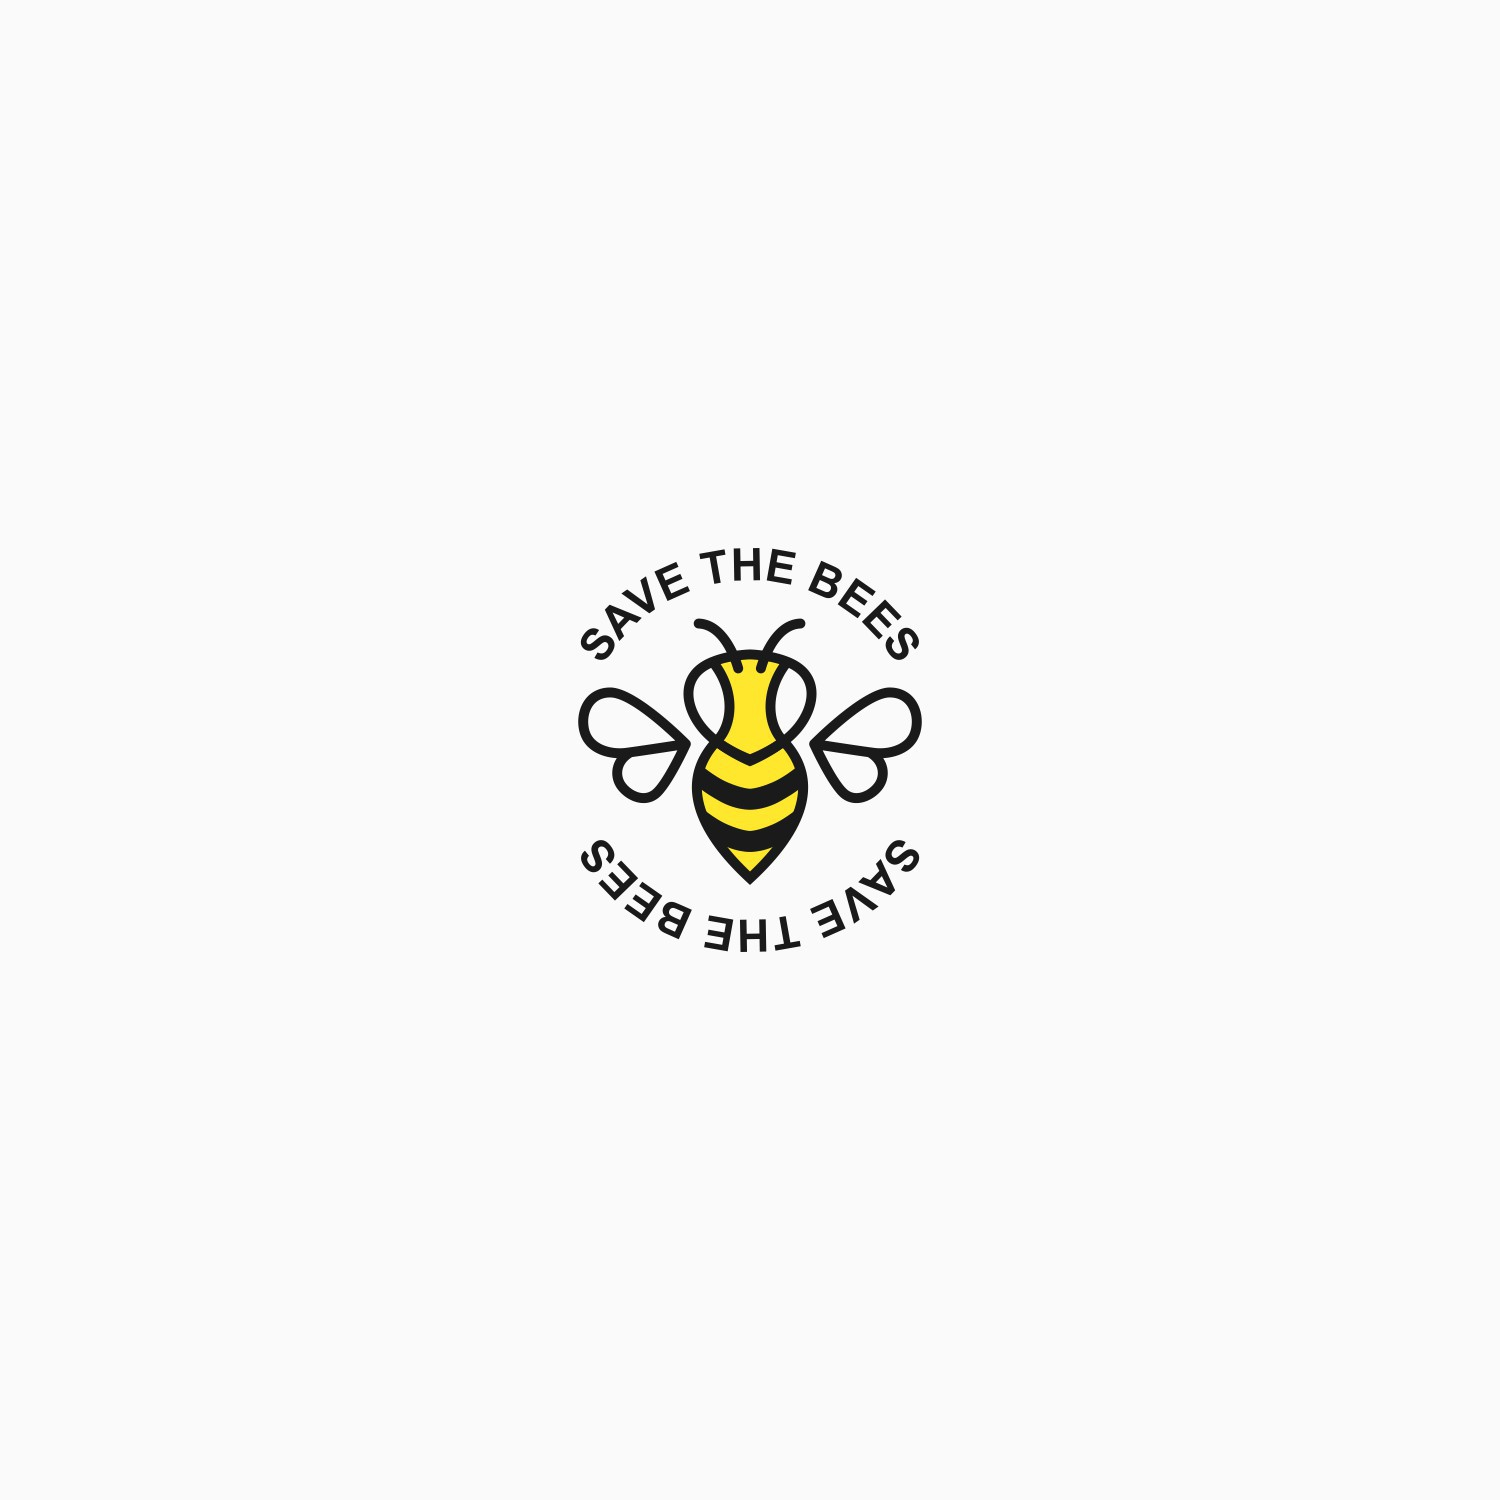 Save the bees - Stamp